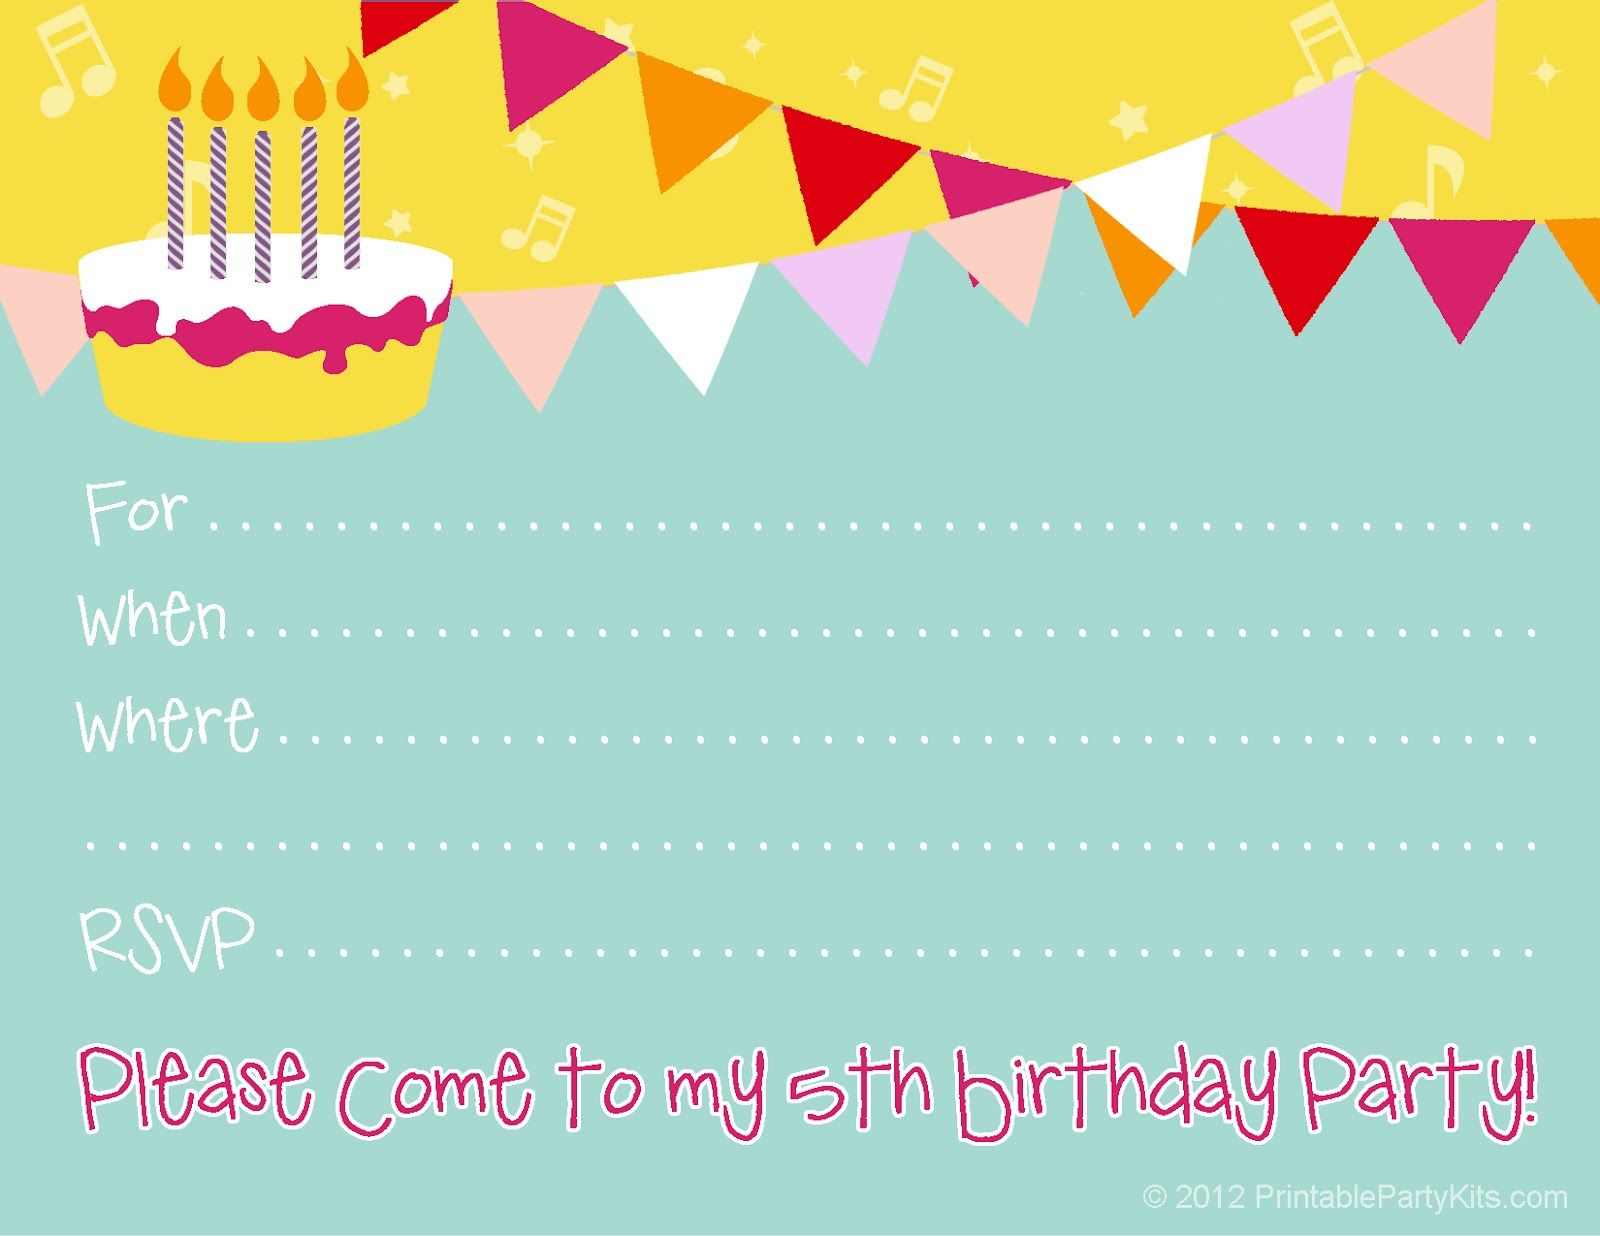 Pincarla Chadwick On Party Printables | Pinterest | Birthday - Happy Birthday Invitations Free Printable